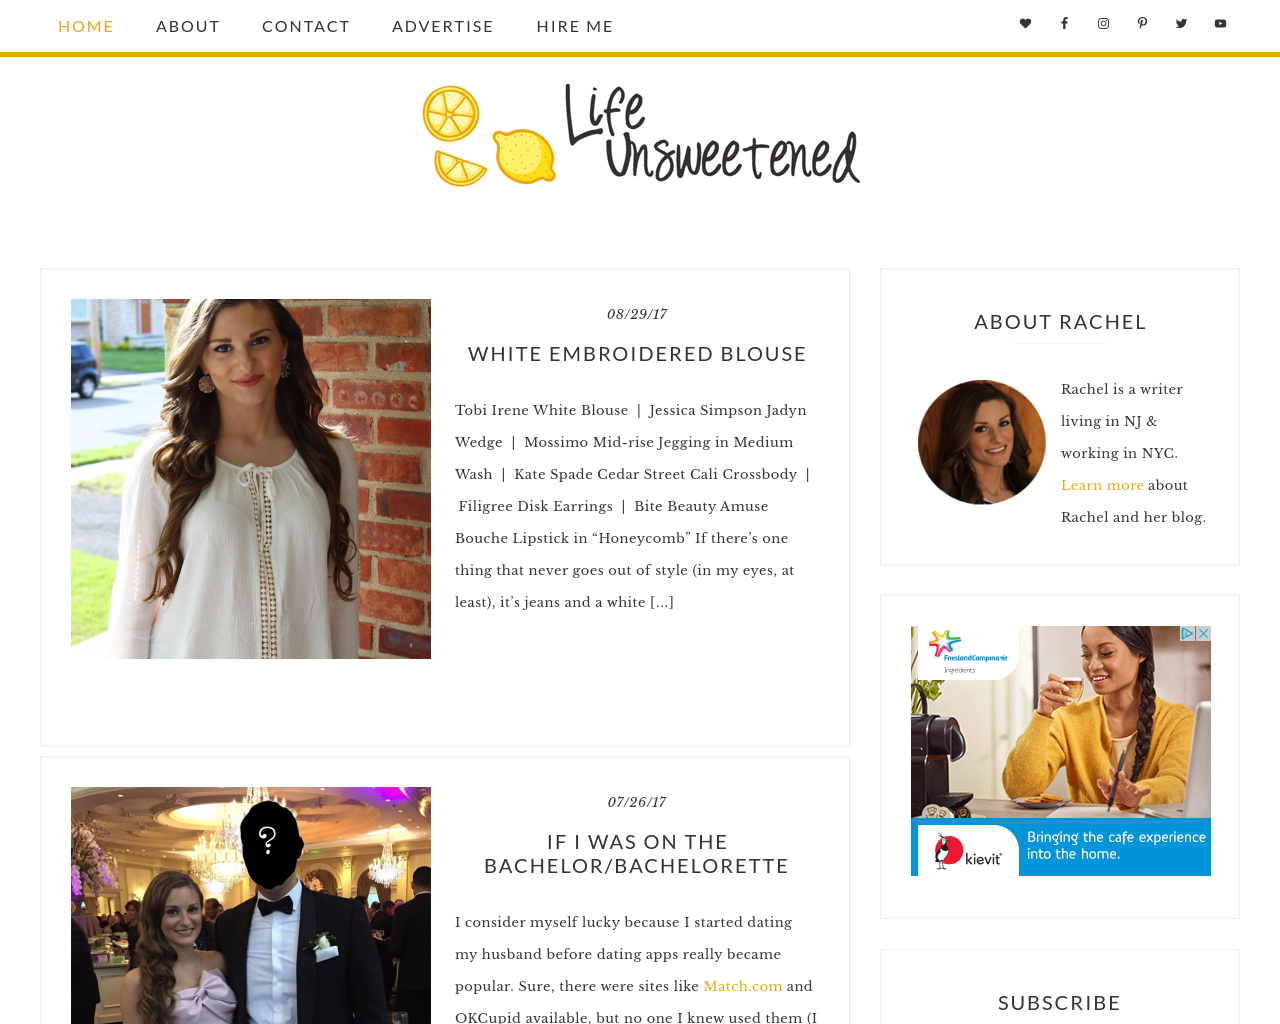 Life-Unsweetened-Advertising-Reviews-Pricing